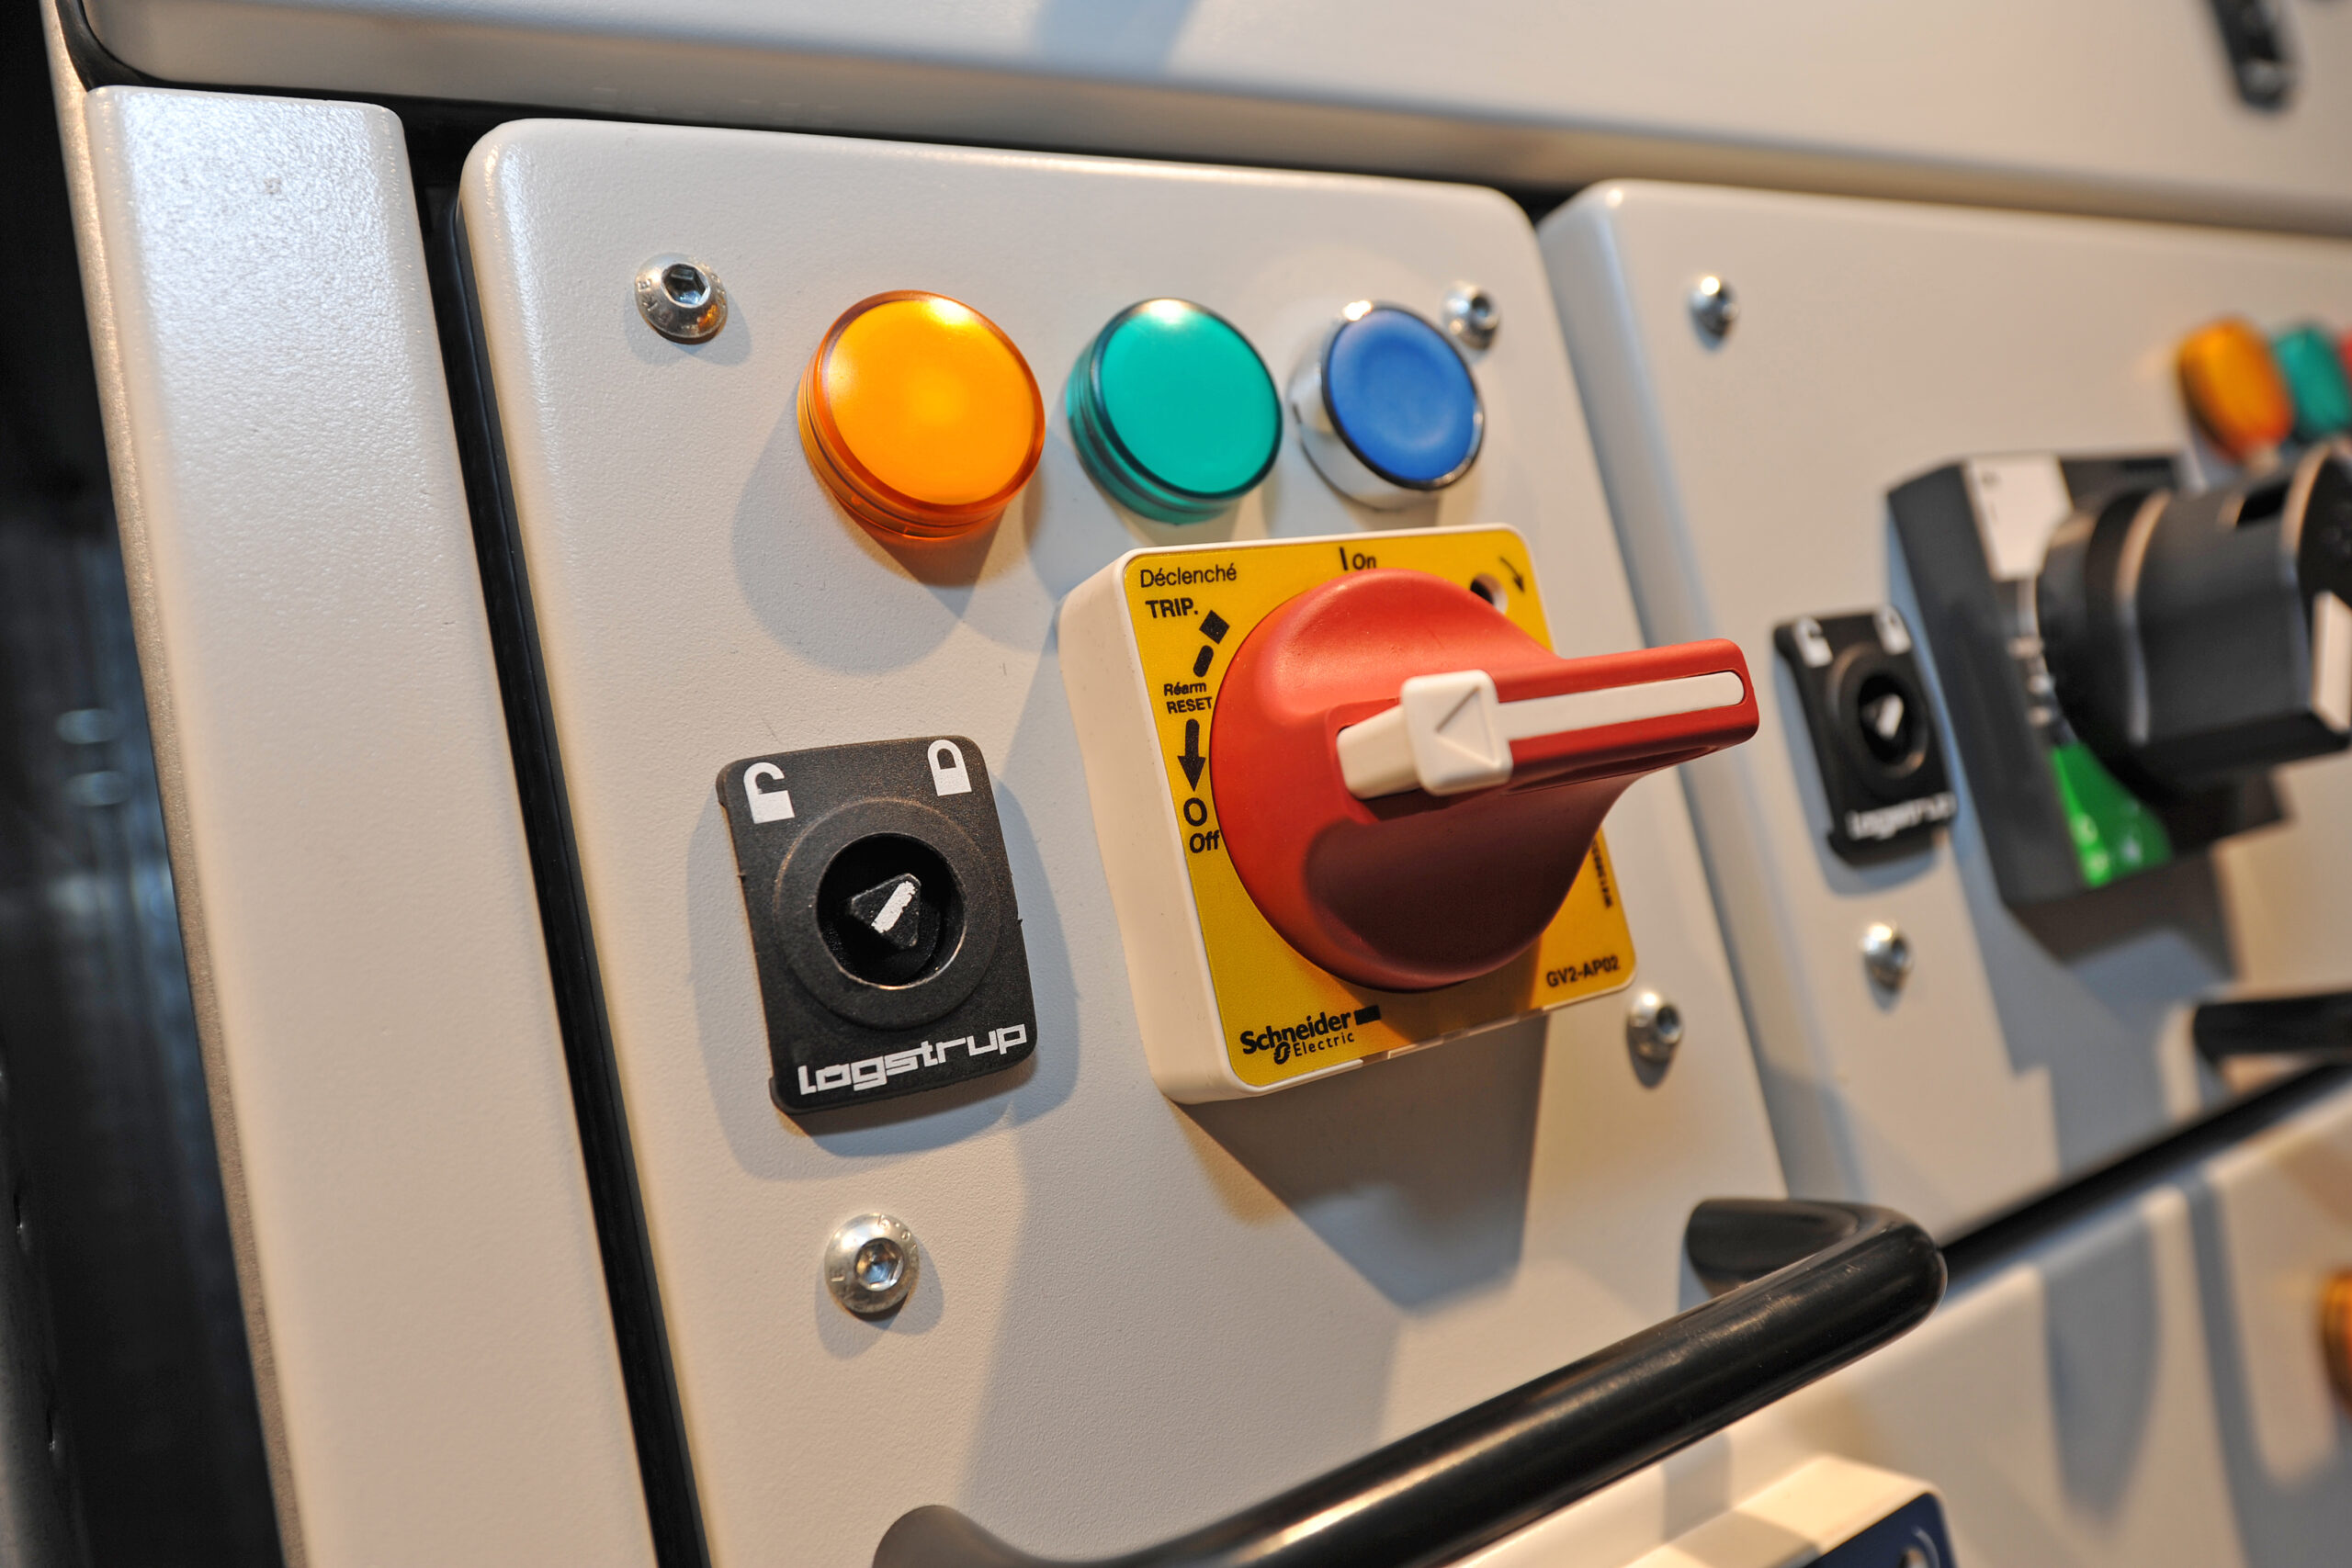 Logstrup is a manufacturer of low voltage electrical Switchgear components such as Mini-withdrawable units